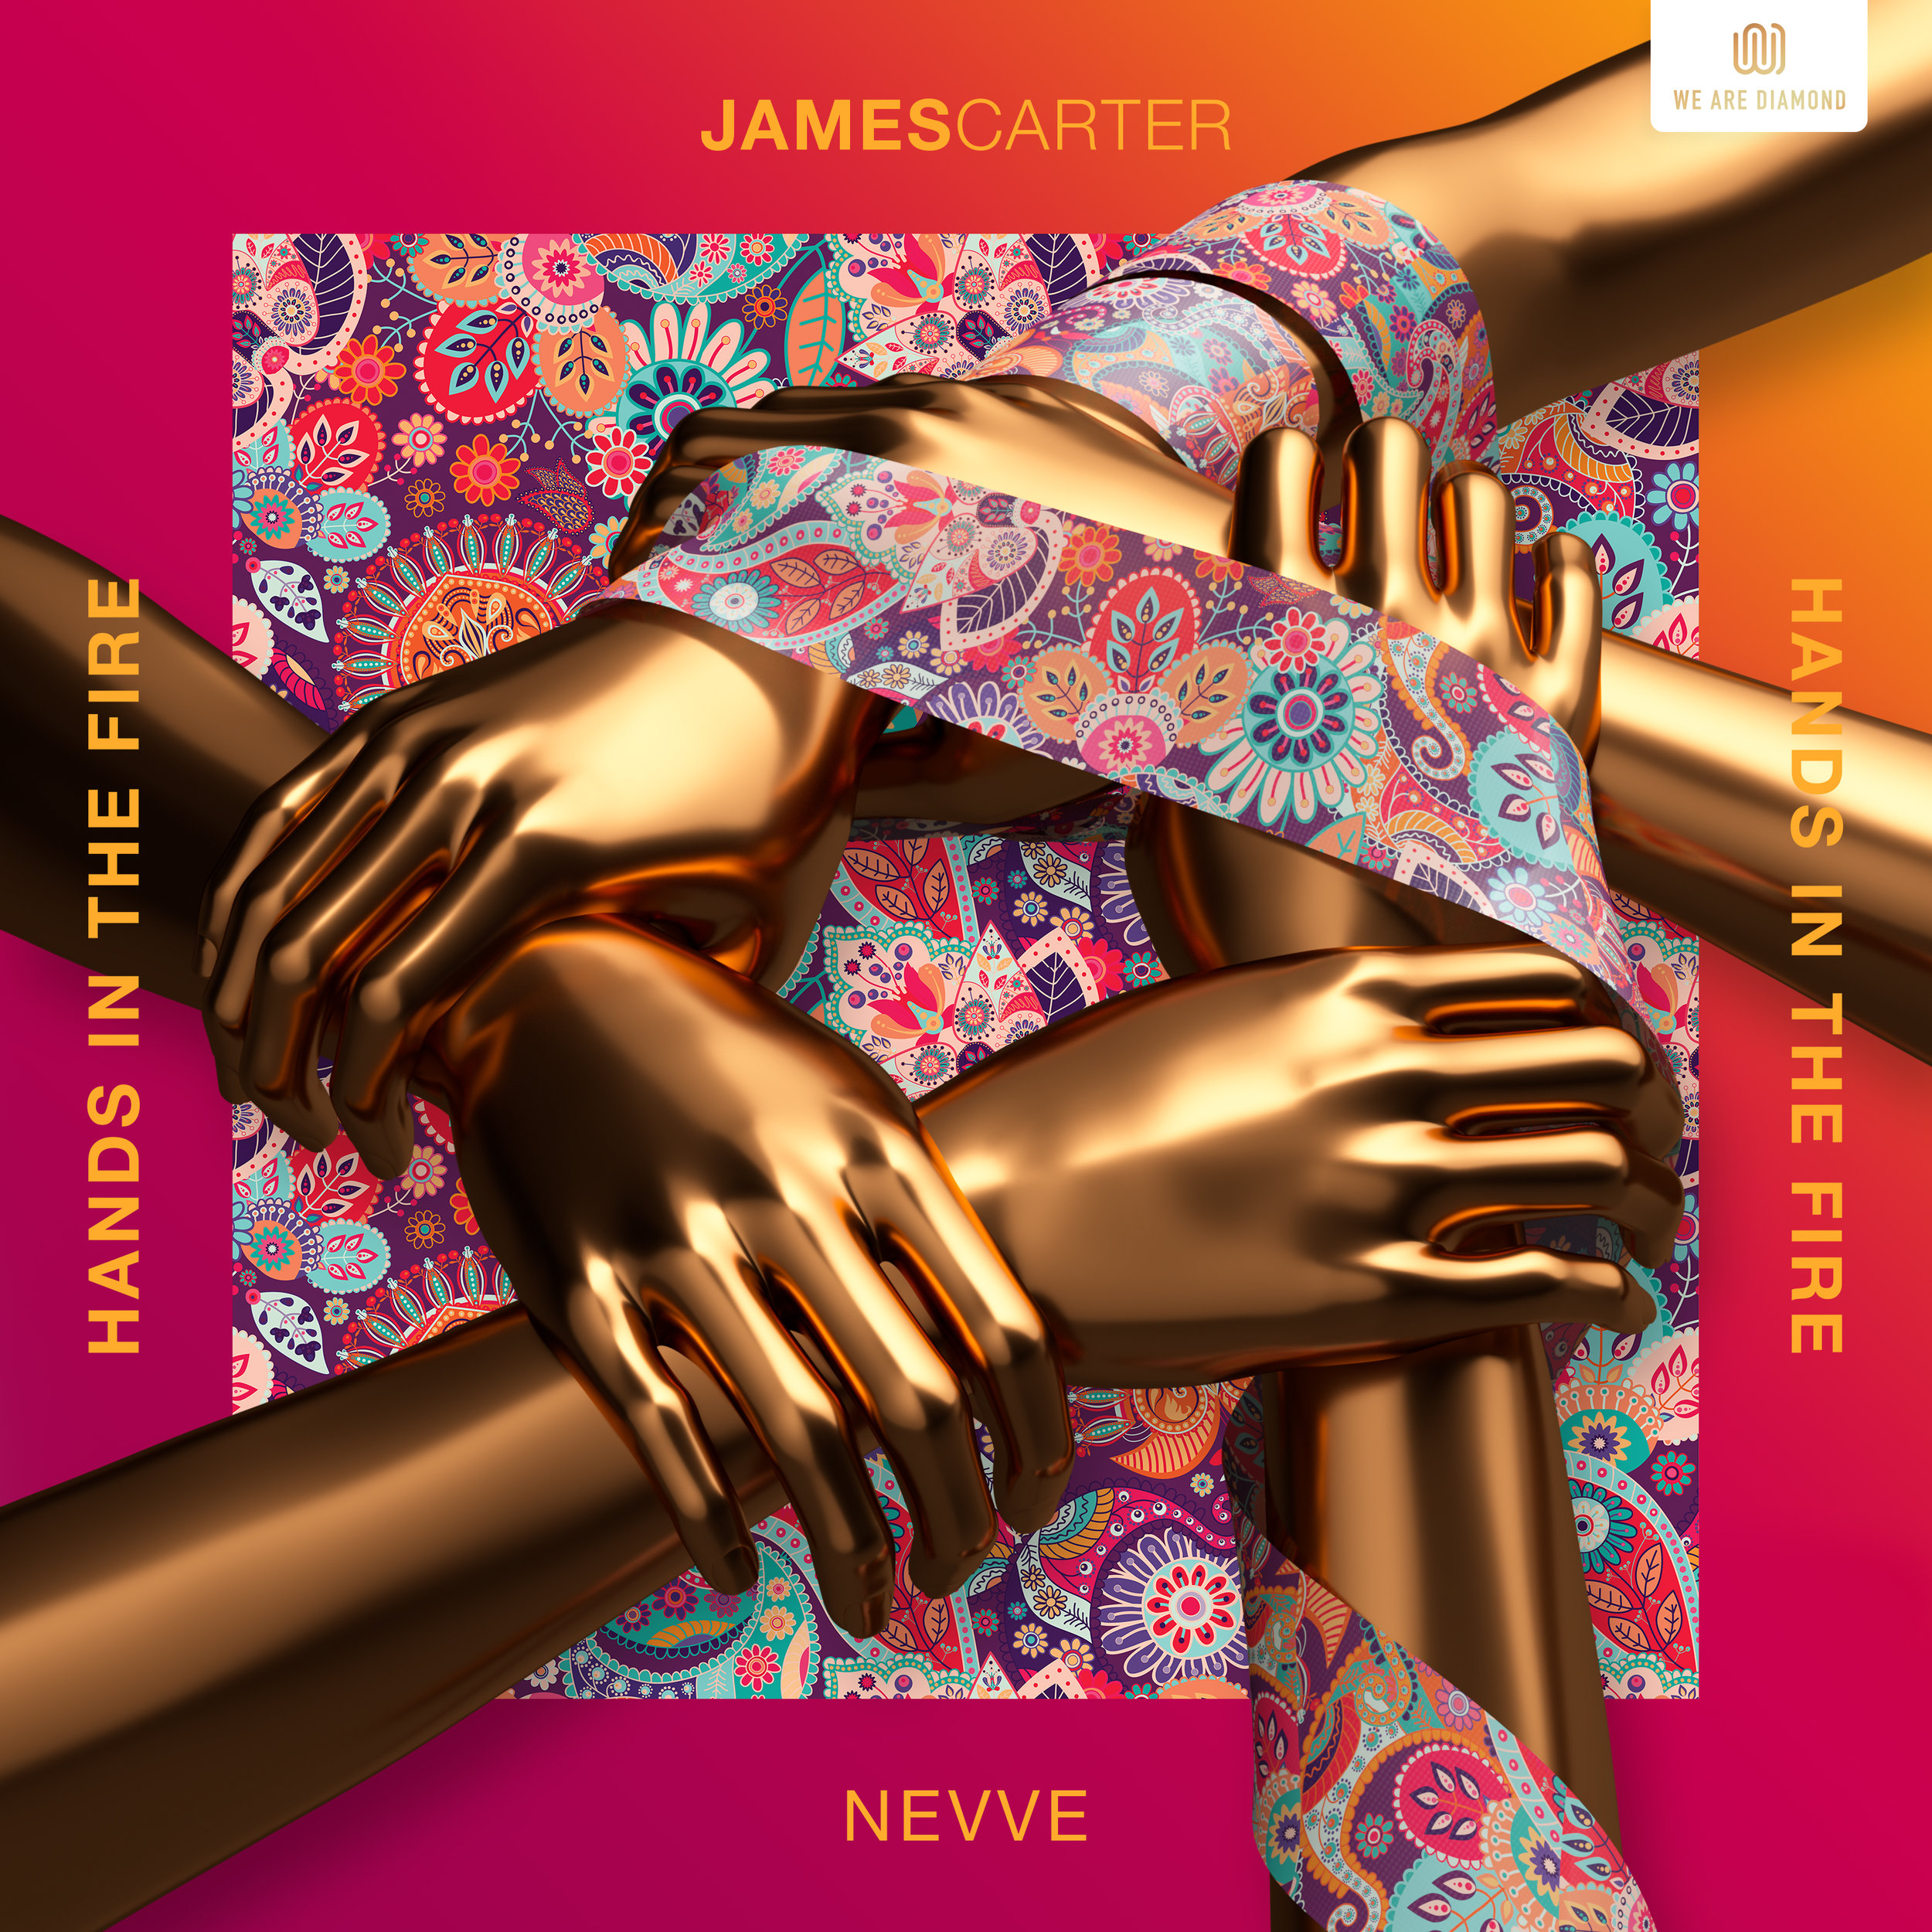 James Carter - Hands in the Fire